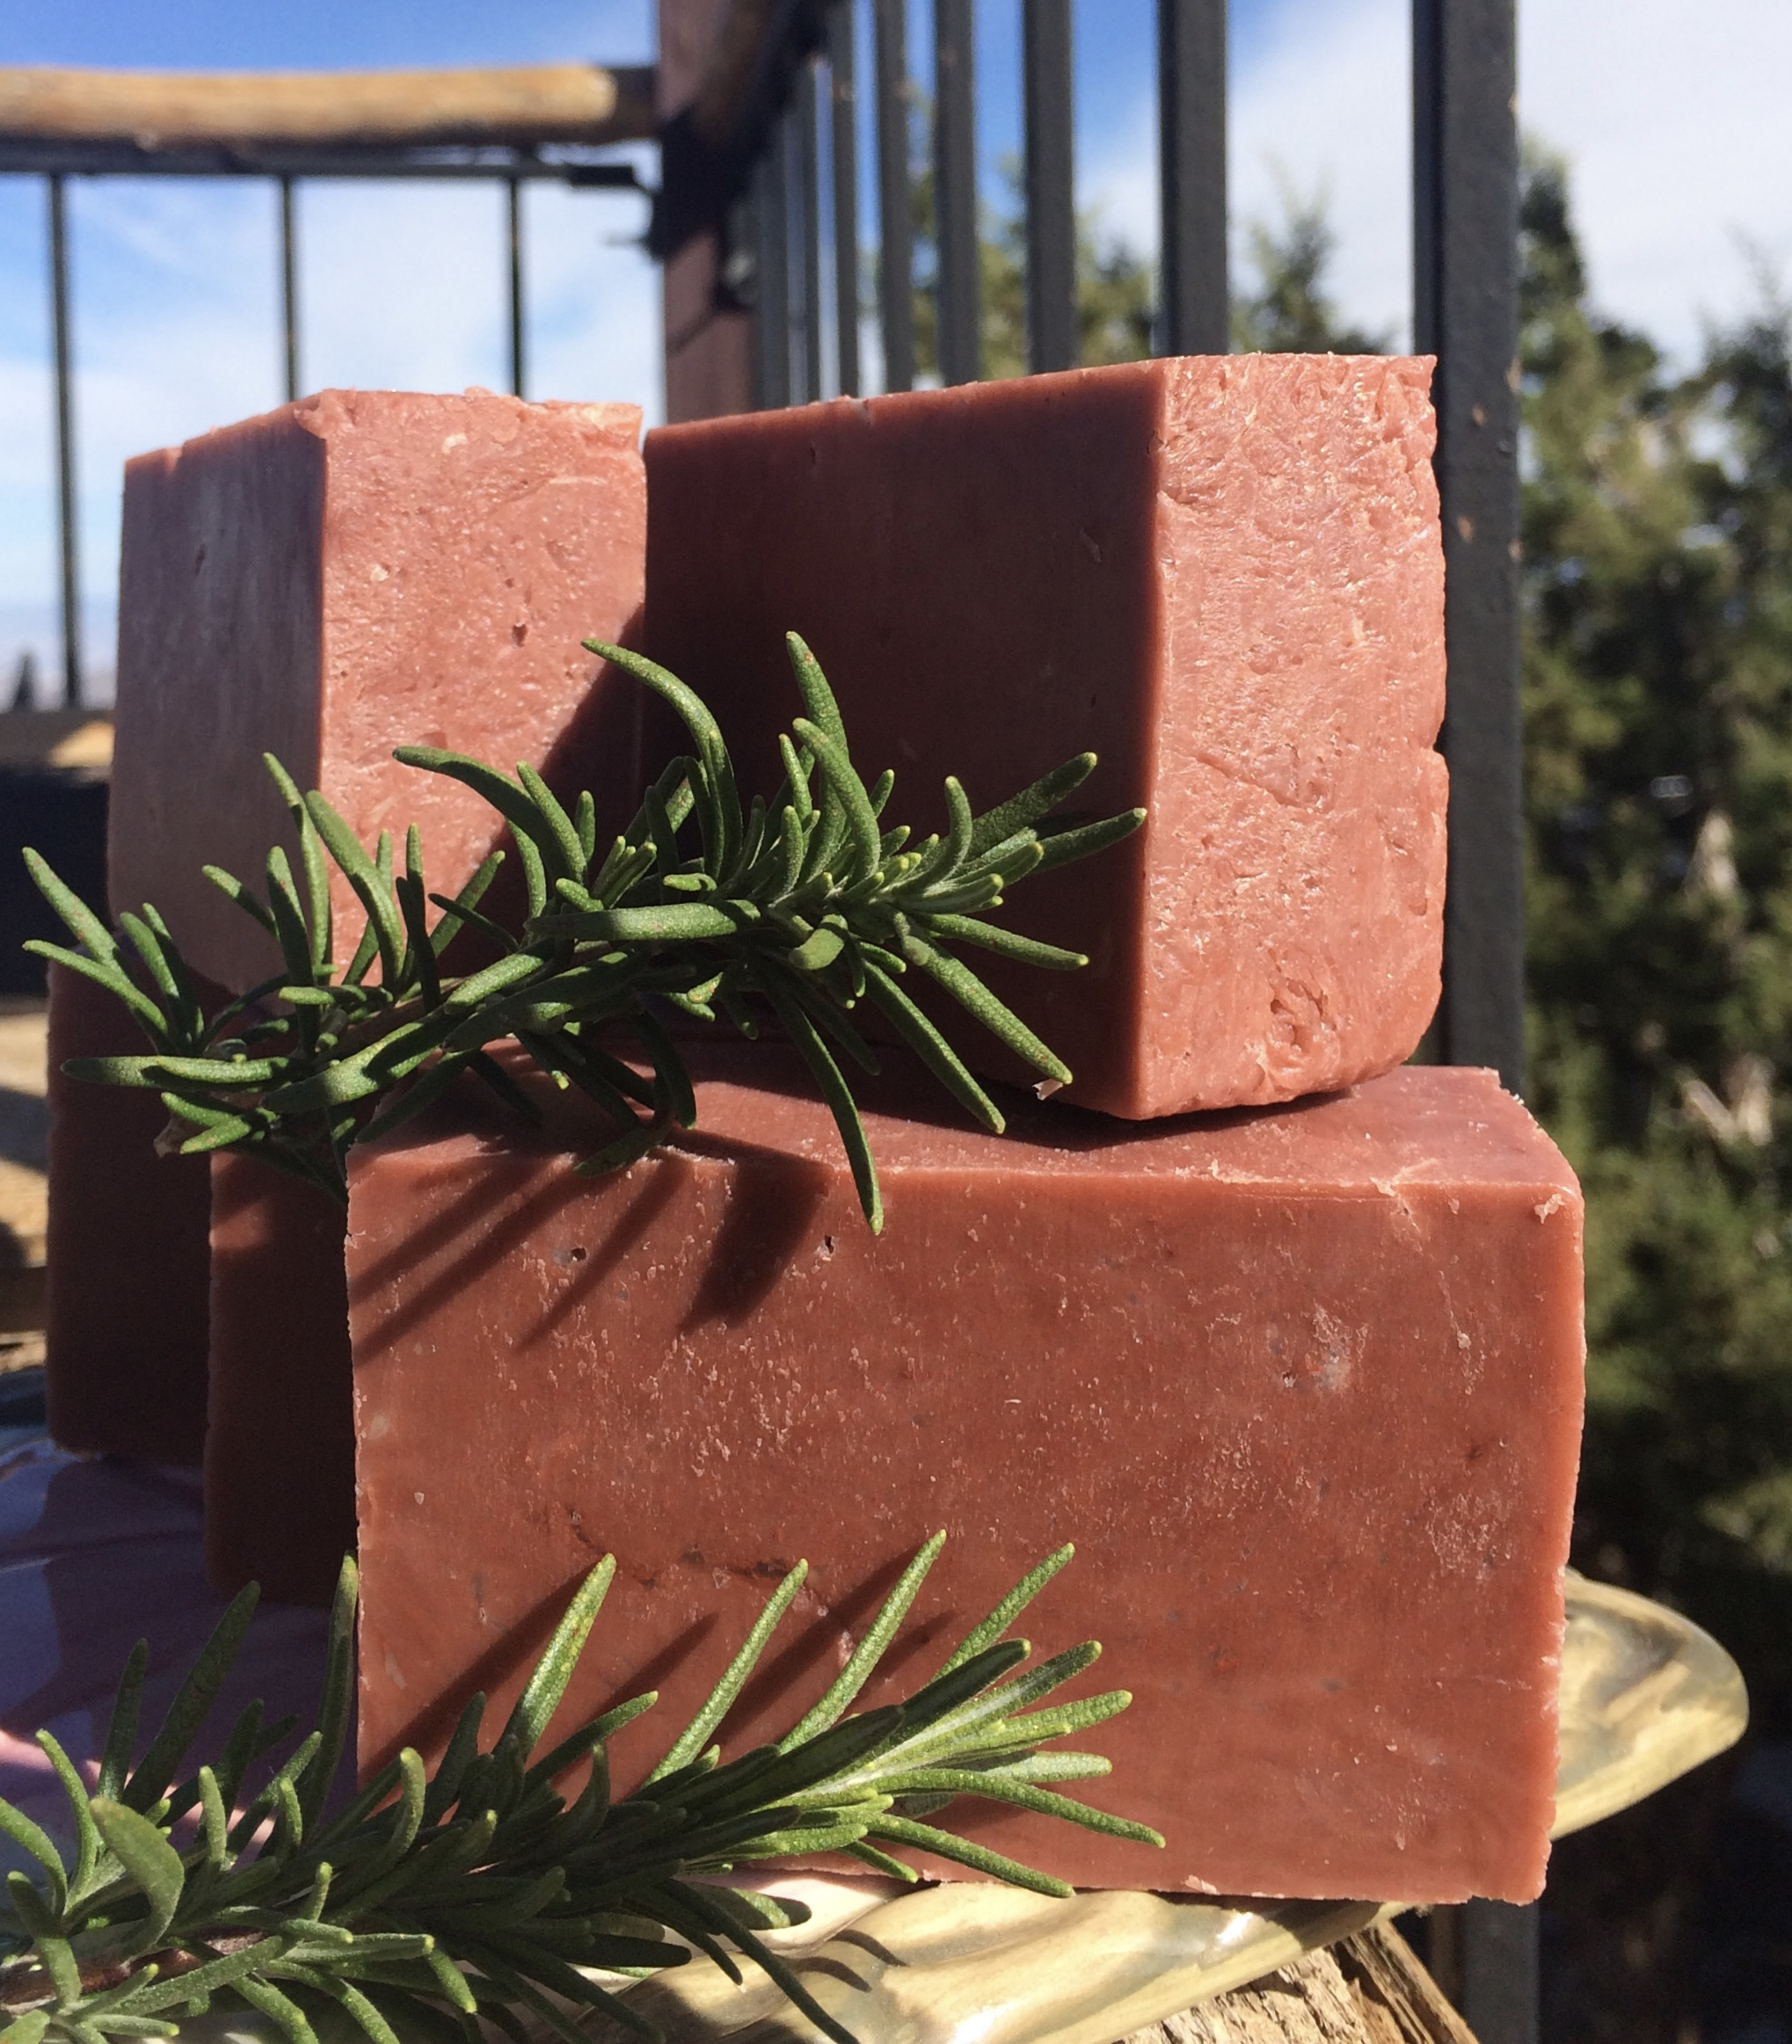 Lavender-Rosemary Soap colored with Red Moroccan Clay